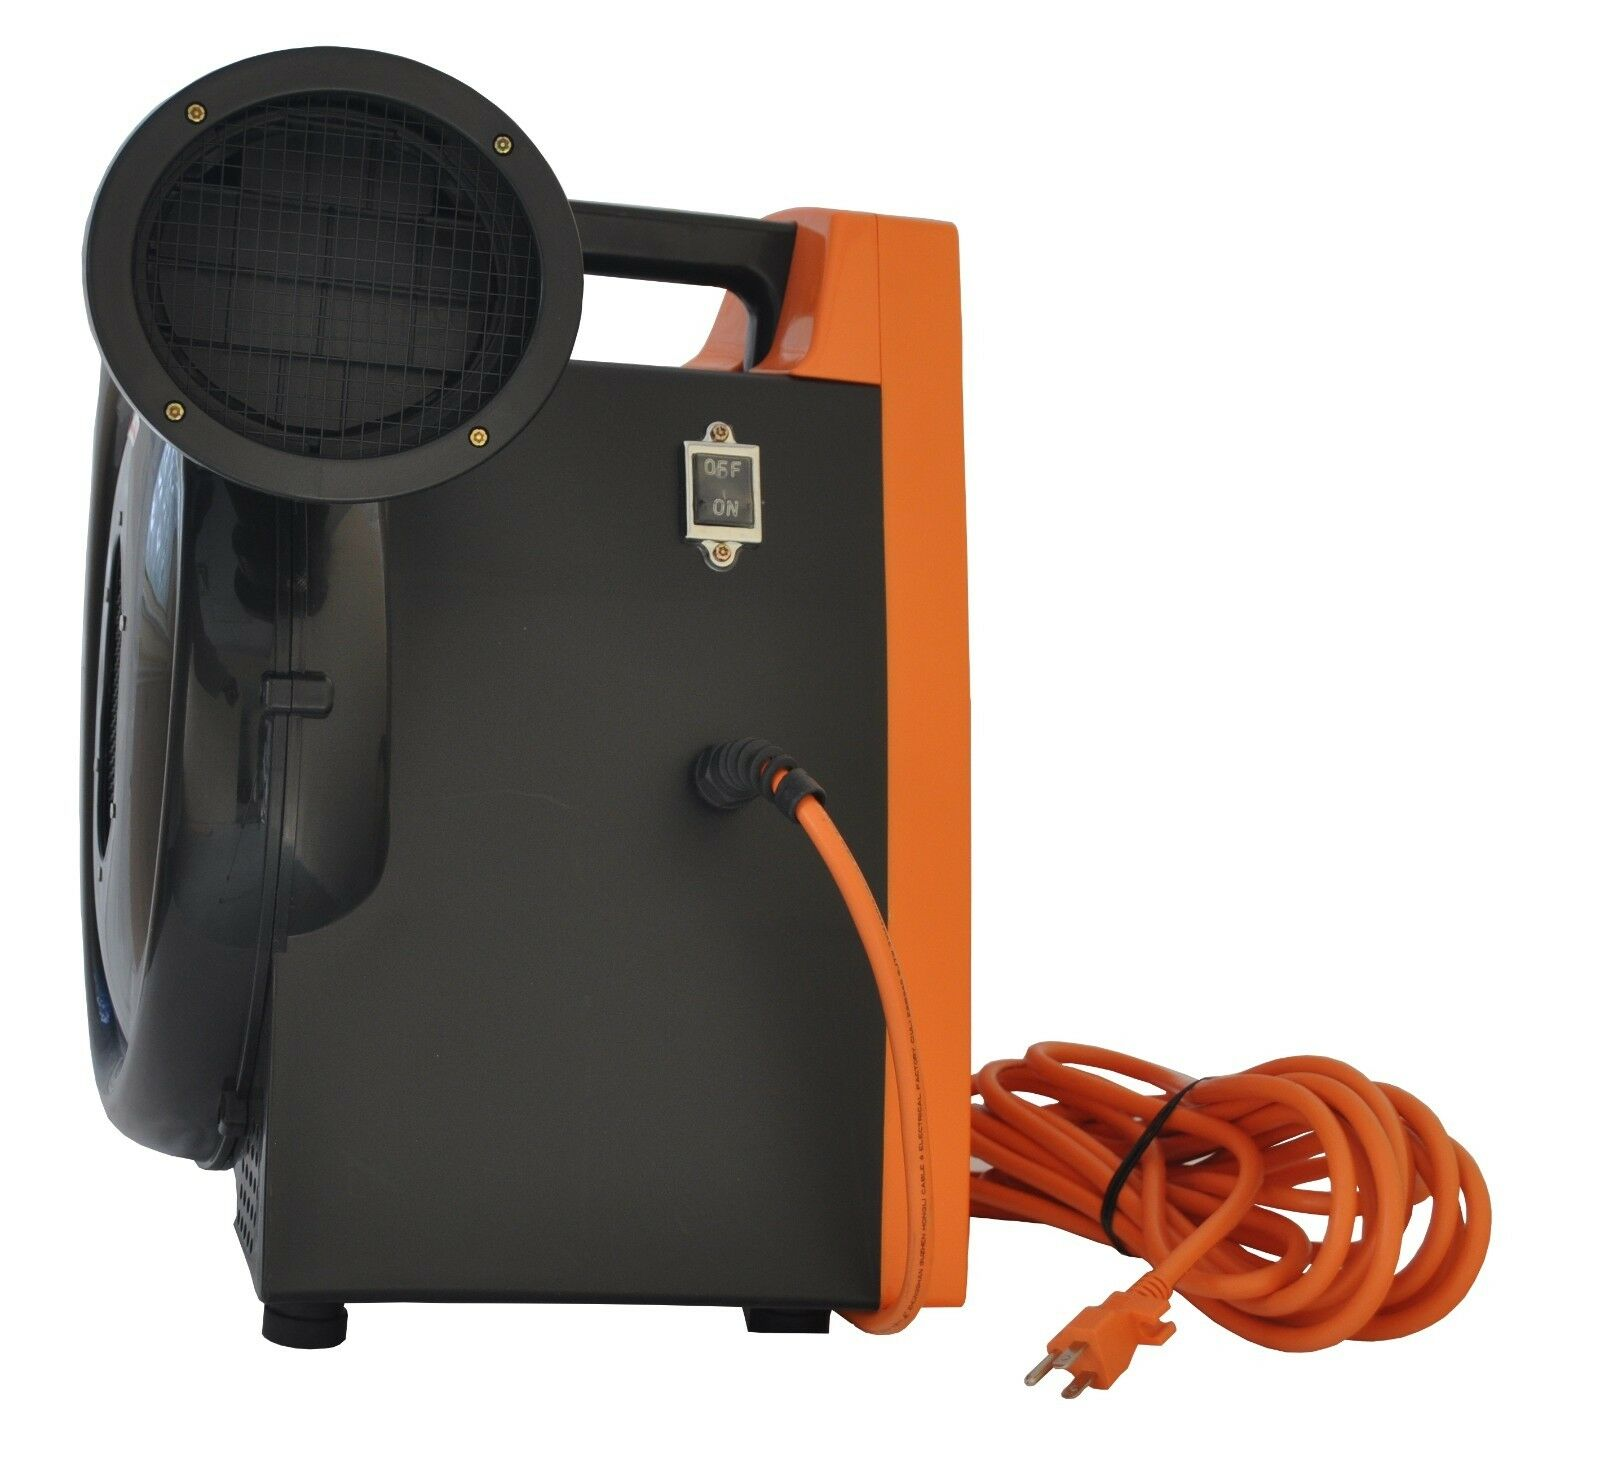 Blower Supercharger For Sale: 2 HP Inflatable Bounce House Blower, Zoom® Air Fan Motor